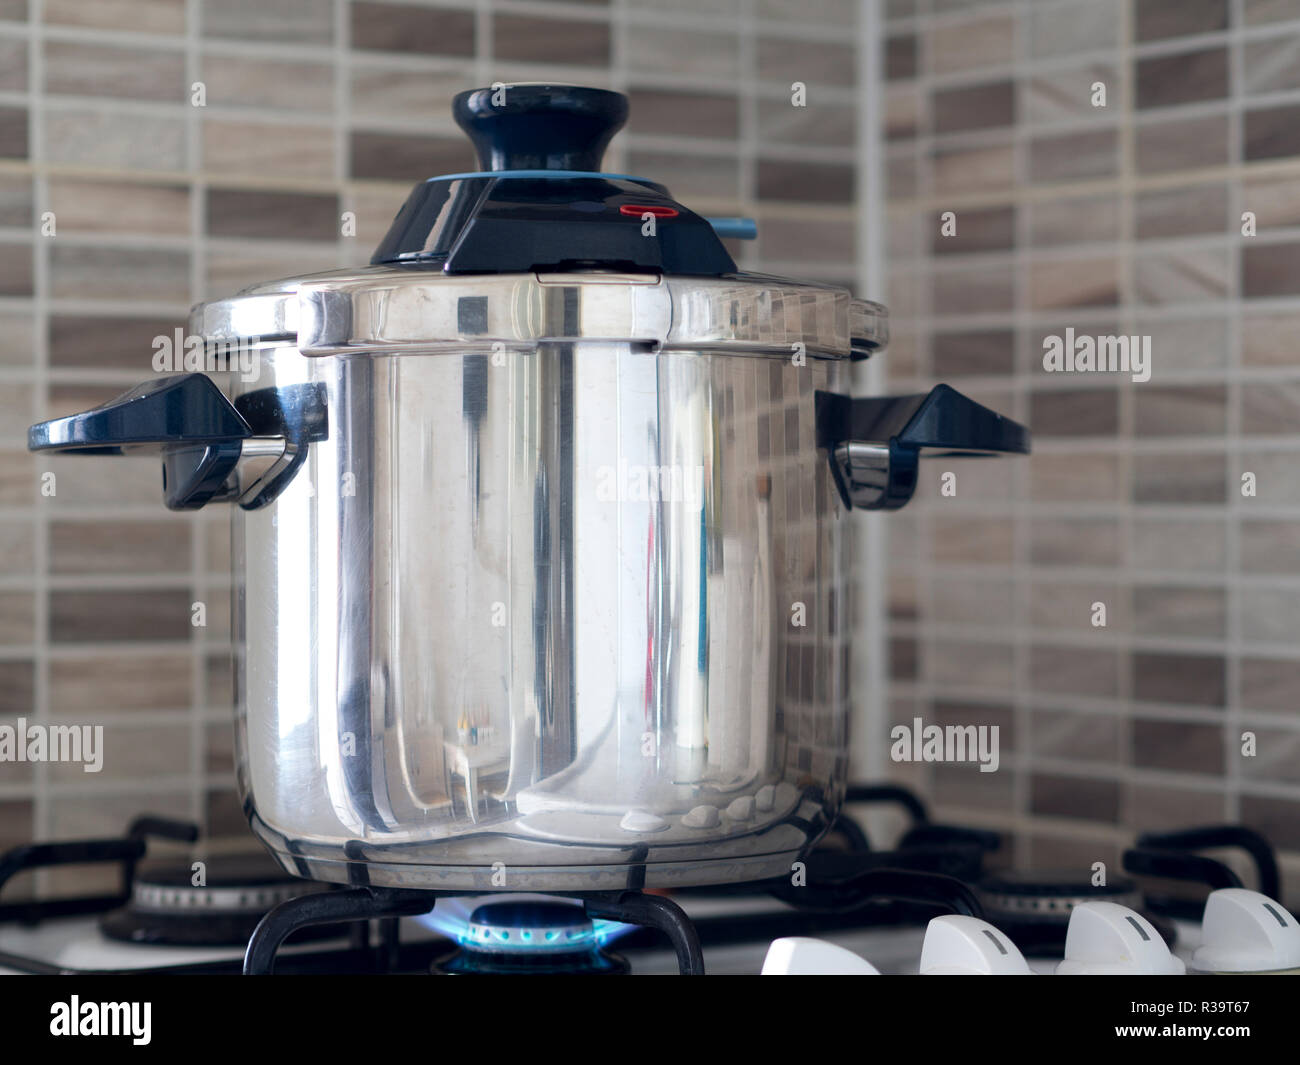 Metallic steel pressure cooker standing on the oven in the kitchen and cooking being cooked - Stock Image